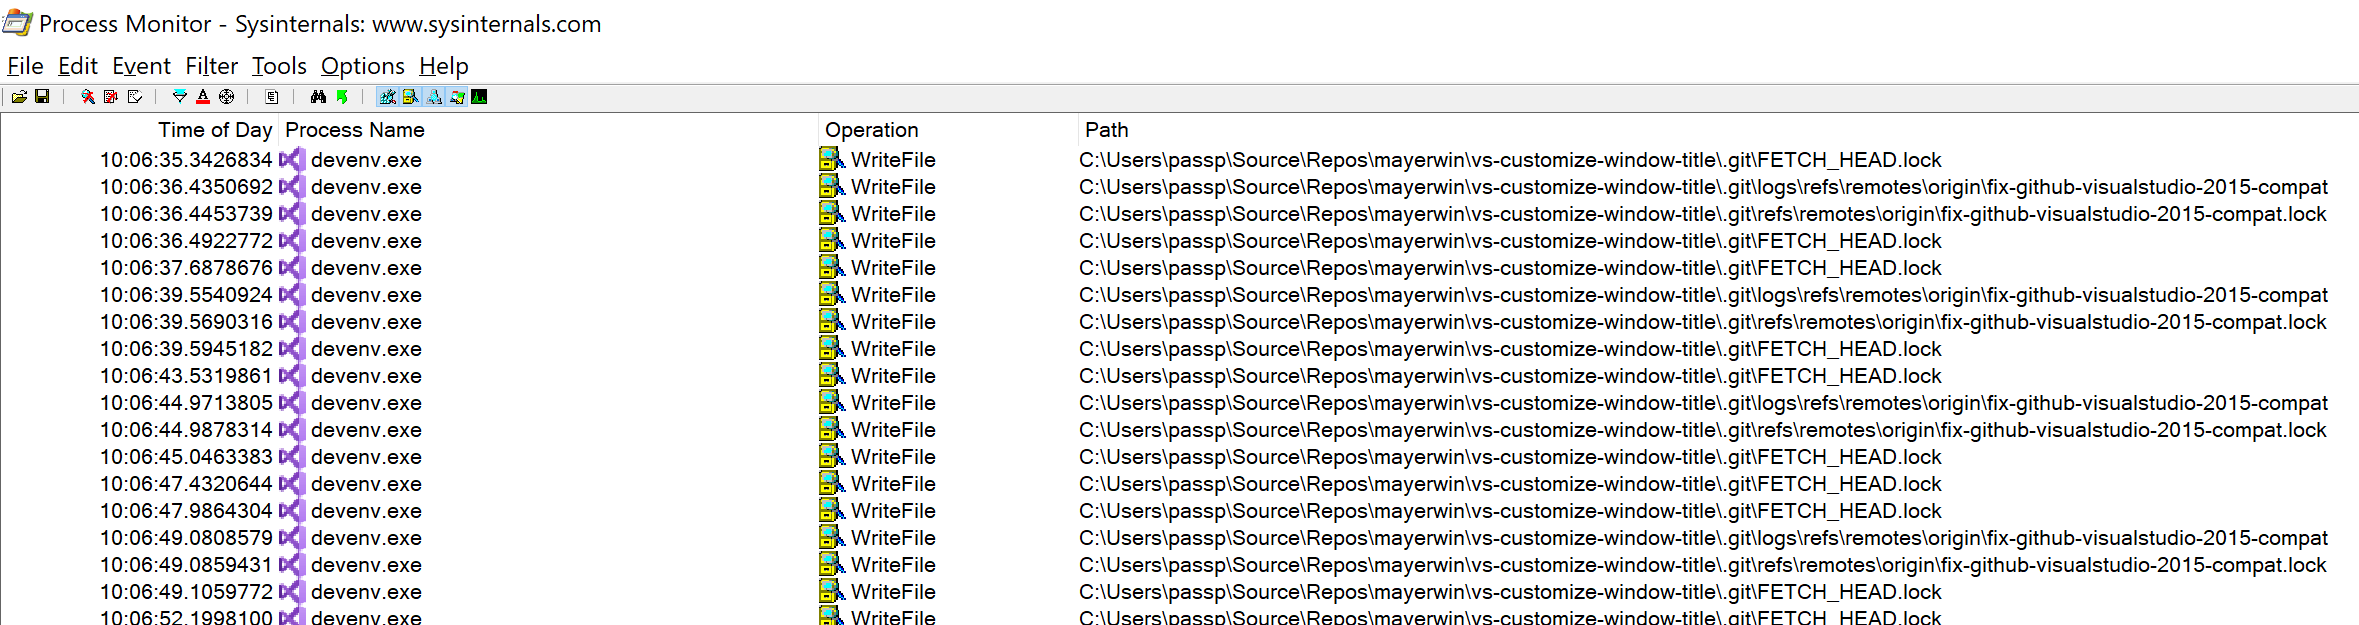 Externally contributed pull requests get stuck in loop fetching